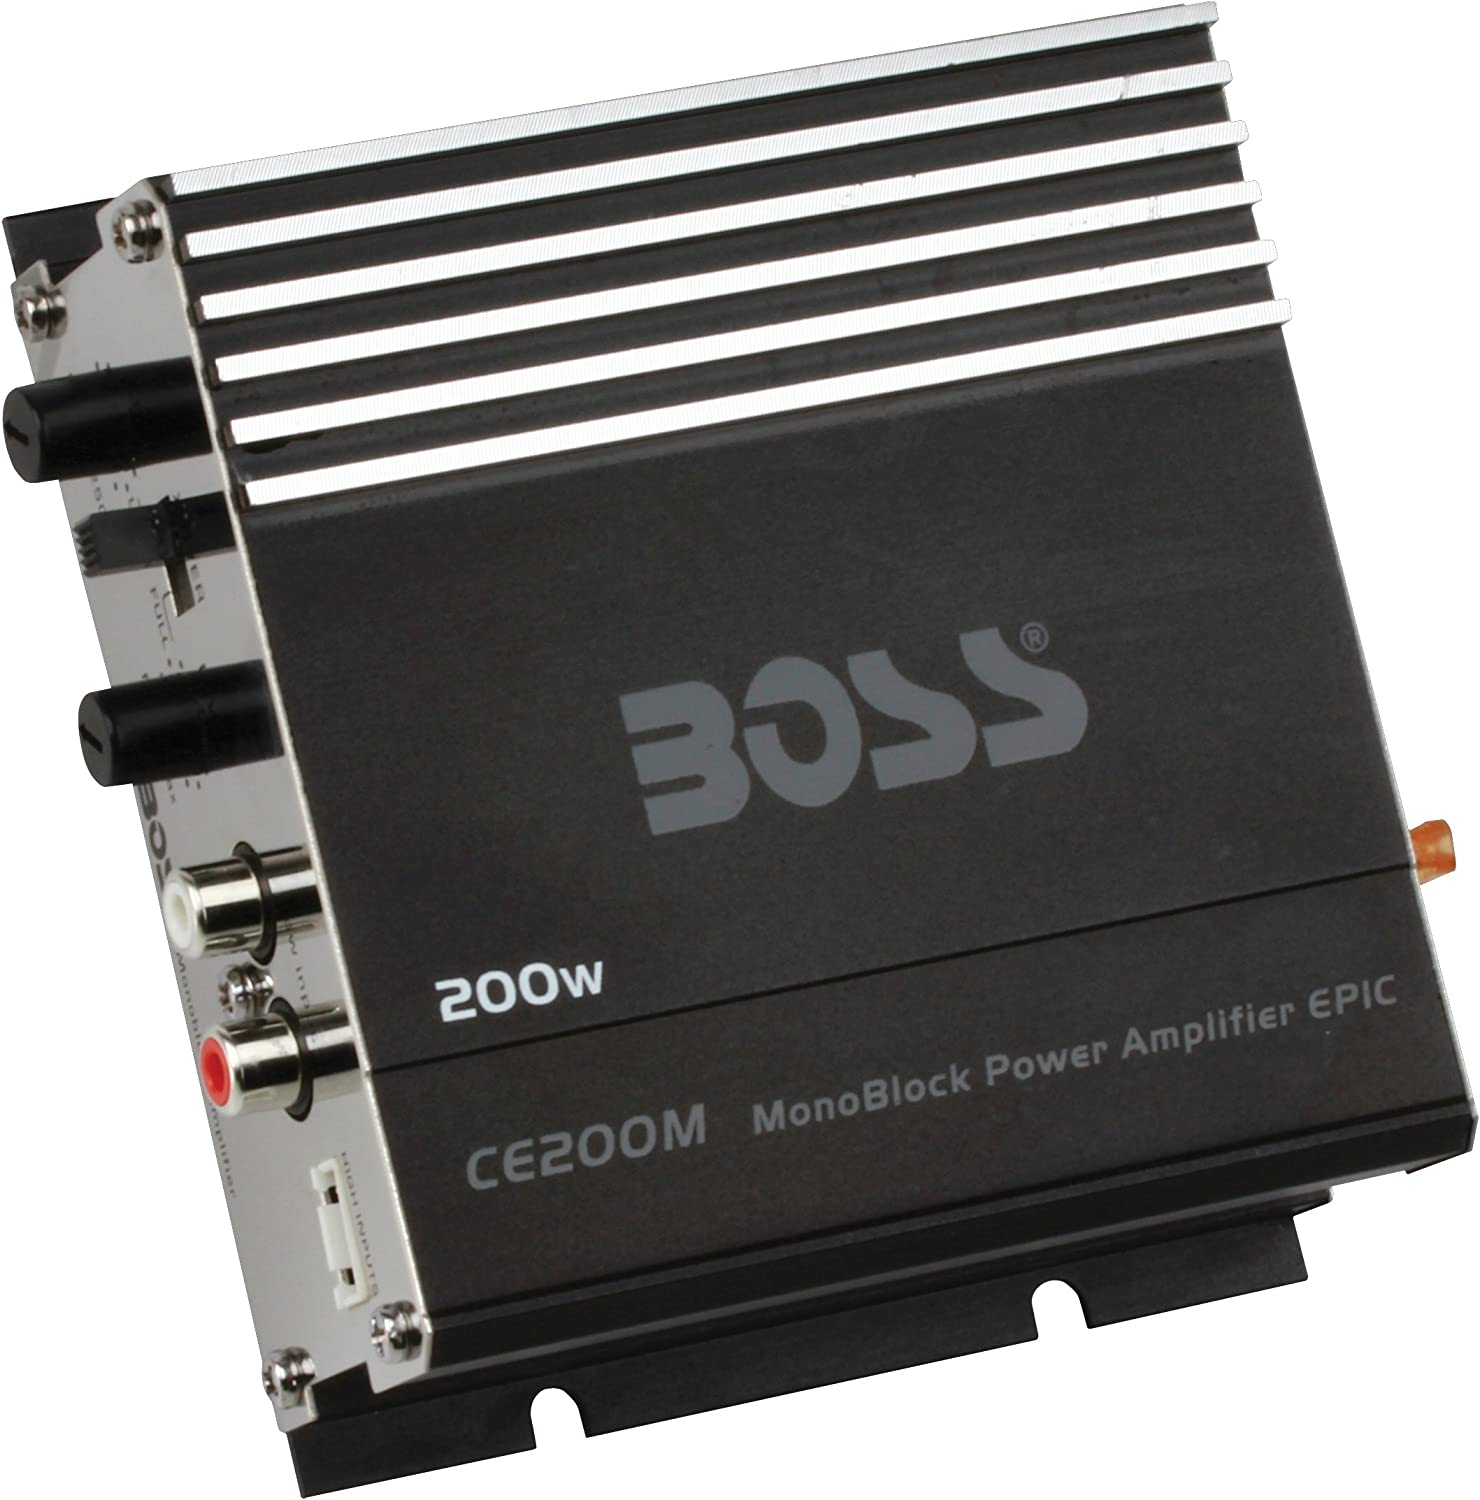 100 Watts Full Range Class A//B IC BOSS Audio Systems CE102 2 Channel Car Amplifier Integrated Circuit